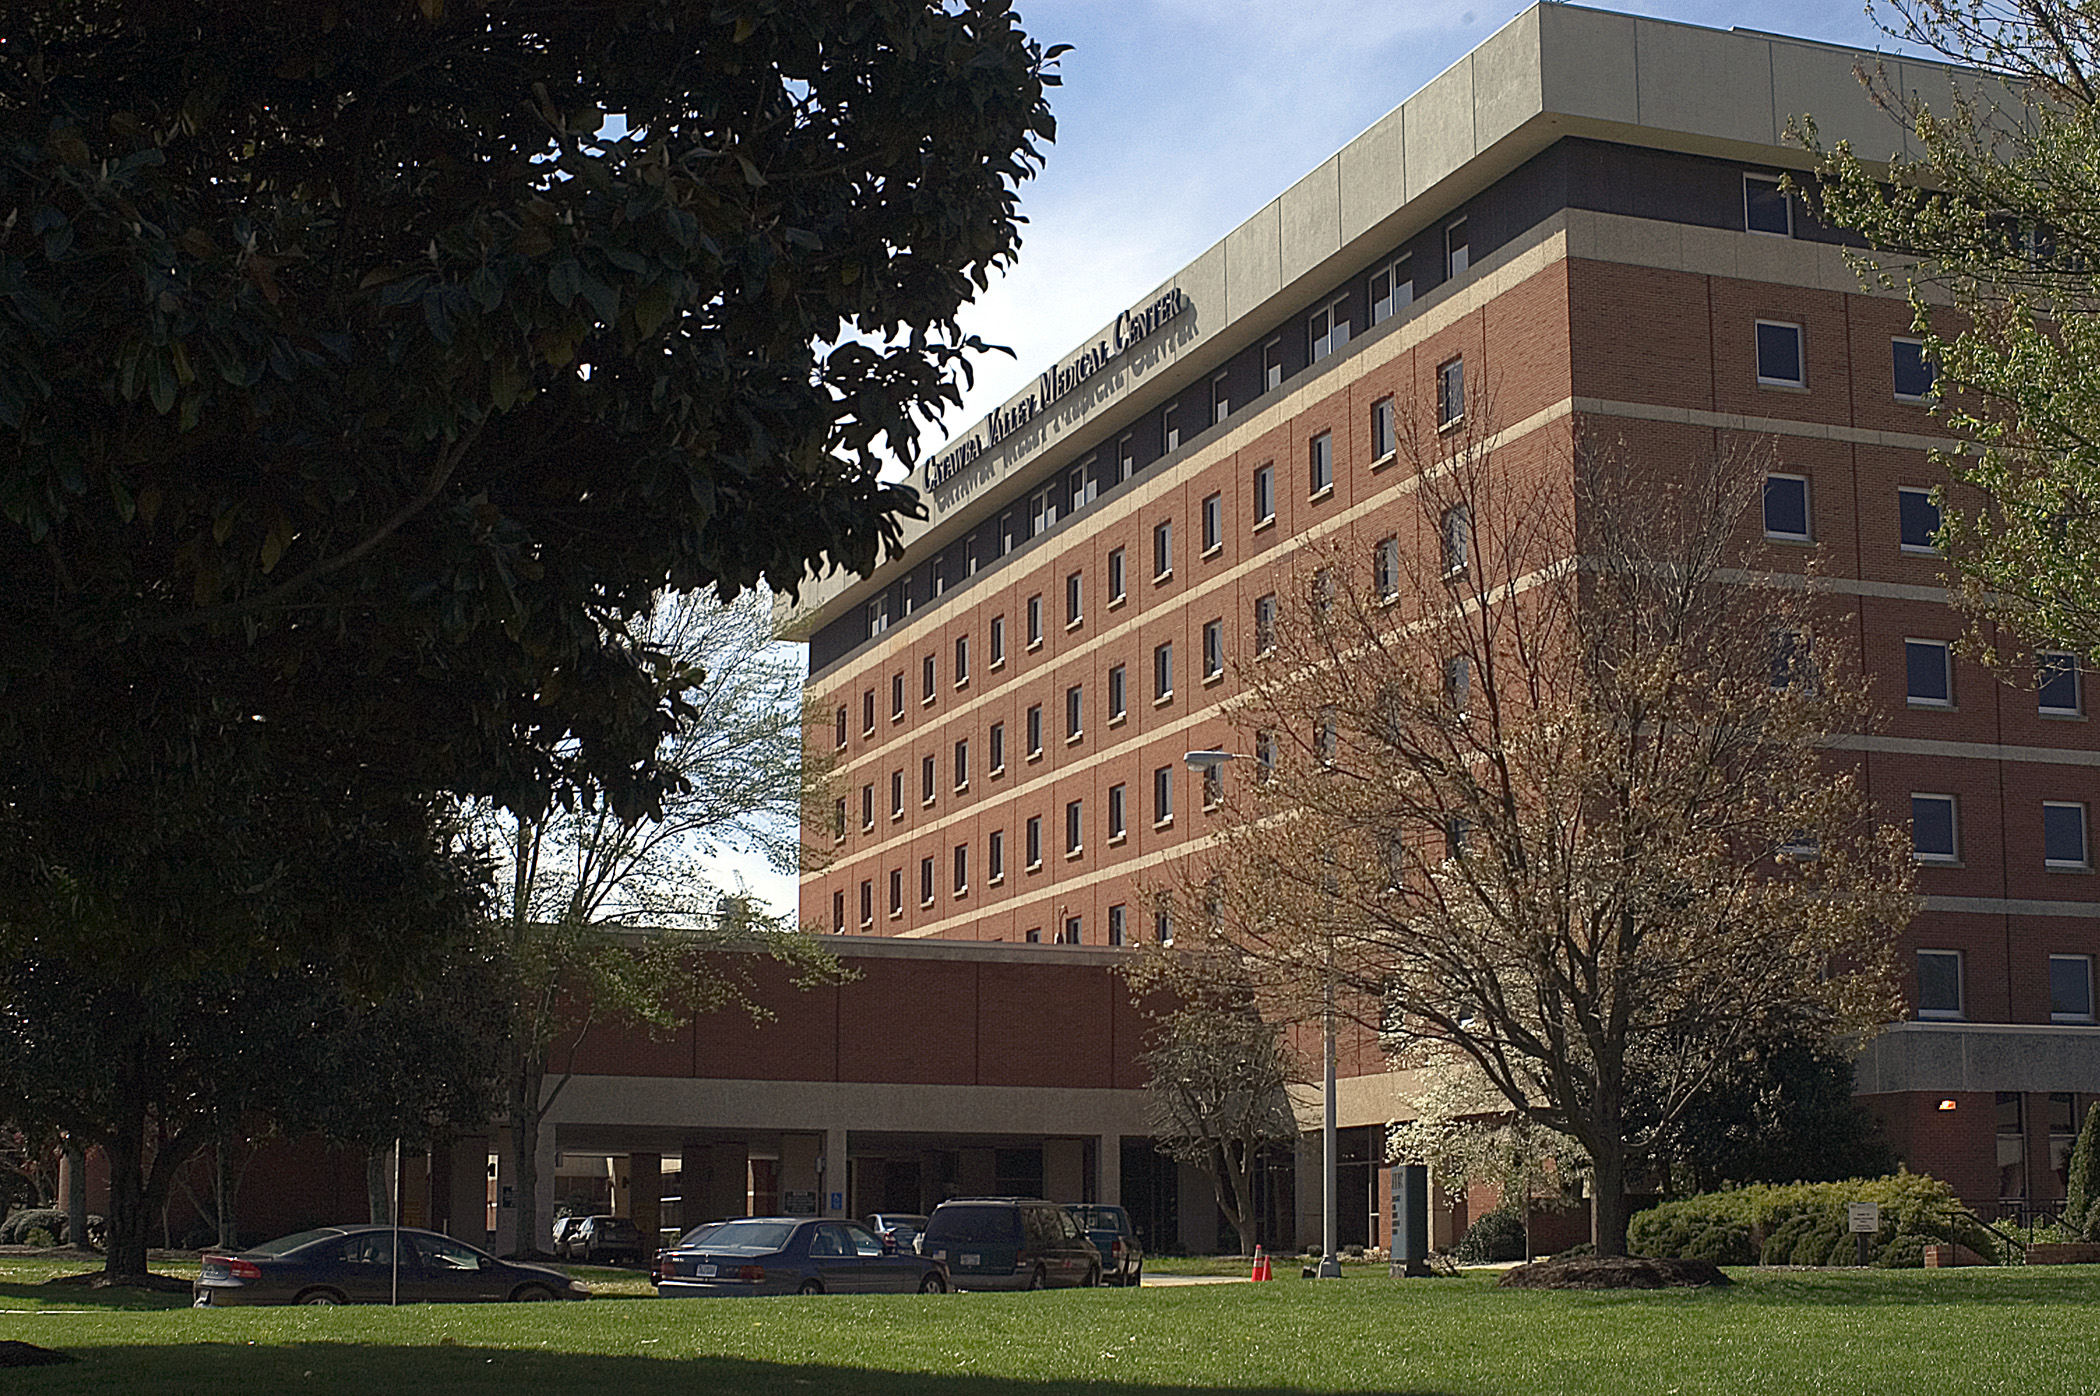 Catawba Valley Medical Center is one of two hospitals in Catawba County.